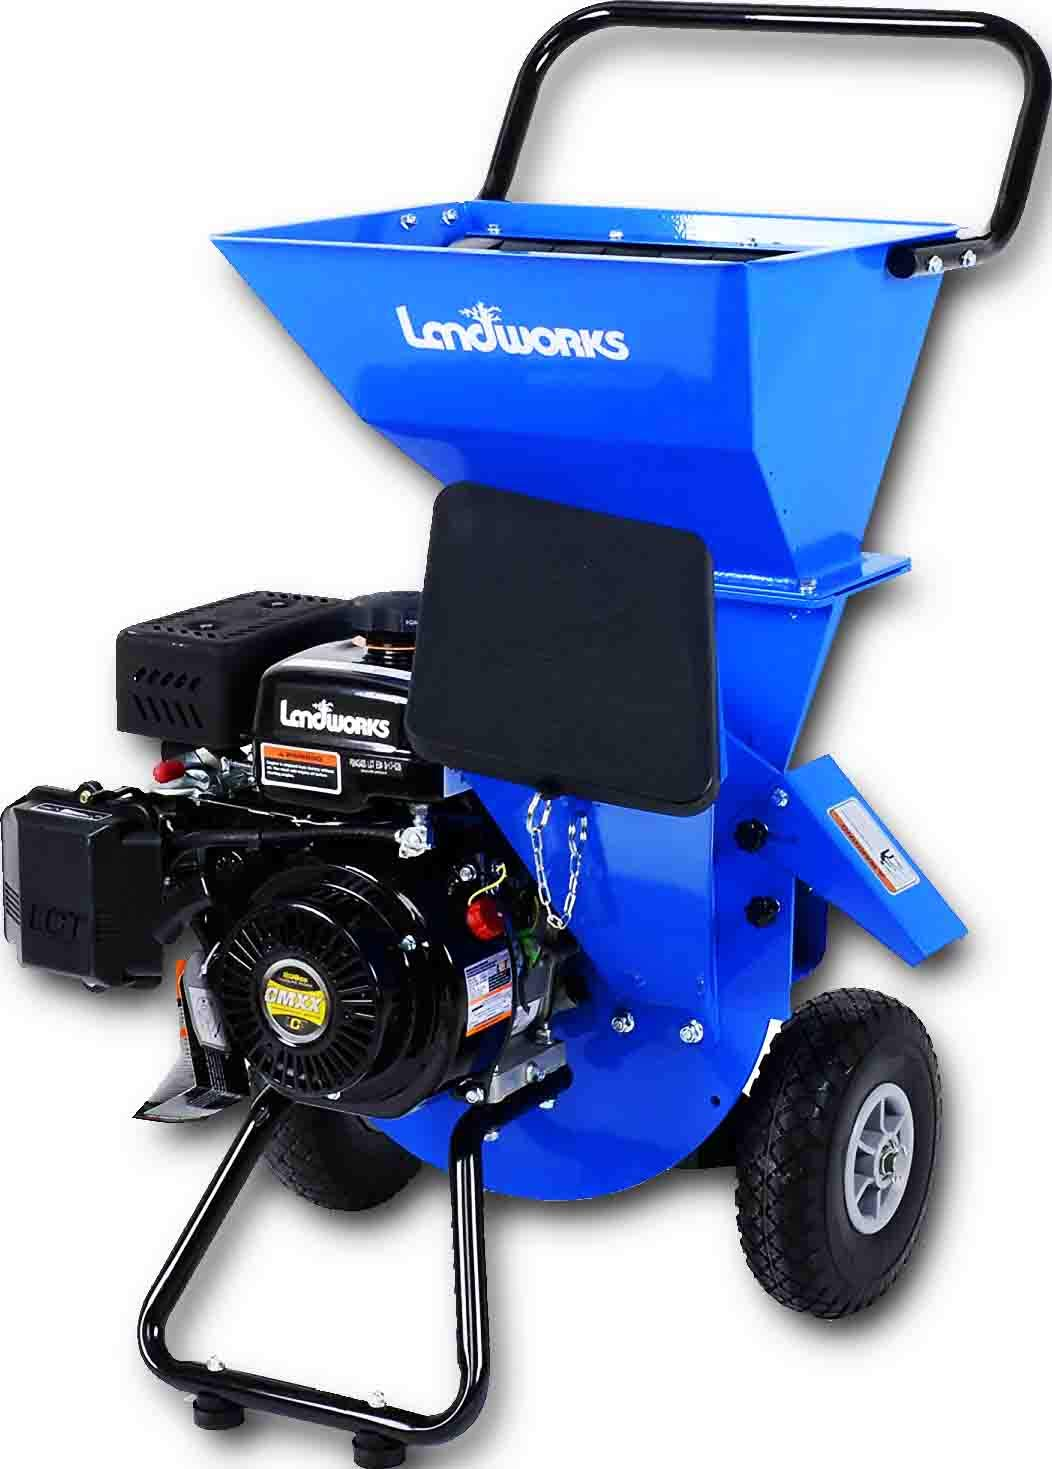 Landworks Super Heavy Duty 7HP 212cc Gas Powered Wood Chipper Shredder Chipping Max. of 3 INCH Capacity, 3 in 1 Capable Multi-Function, CARB Certified 3 Years Warranty by Landworks